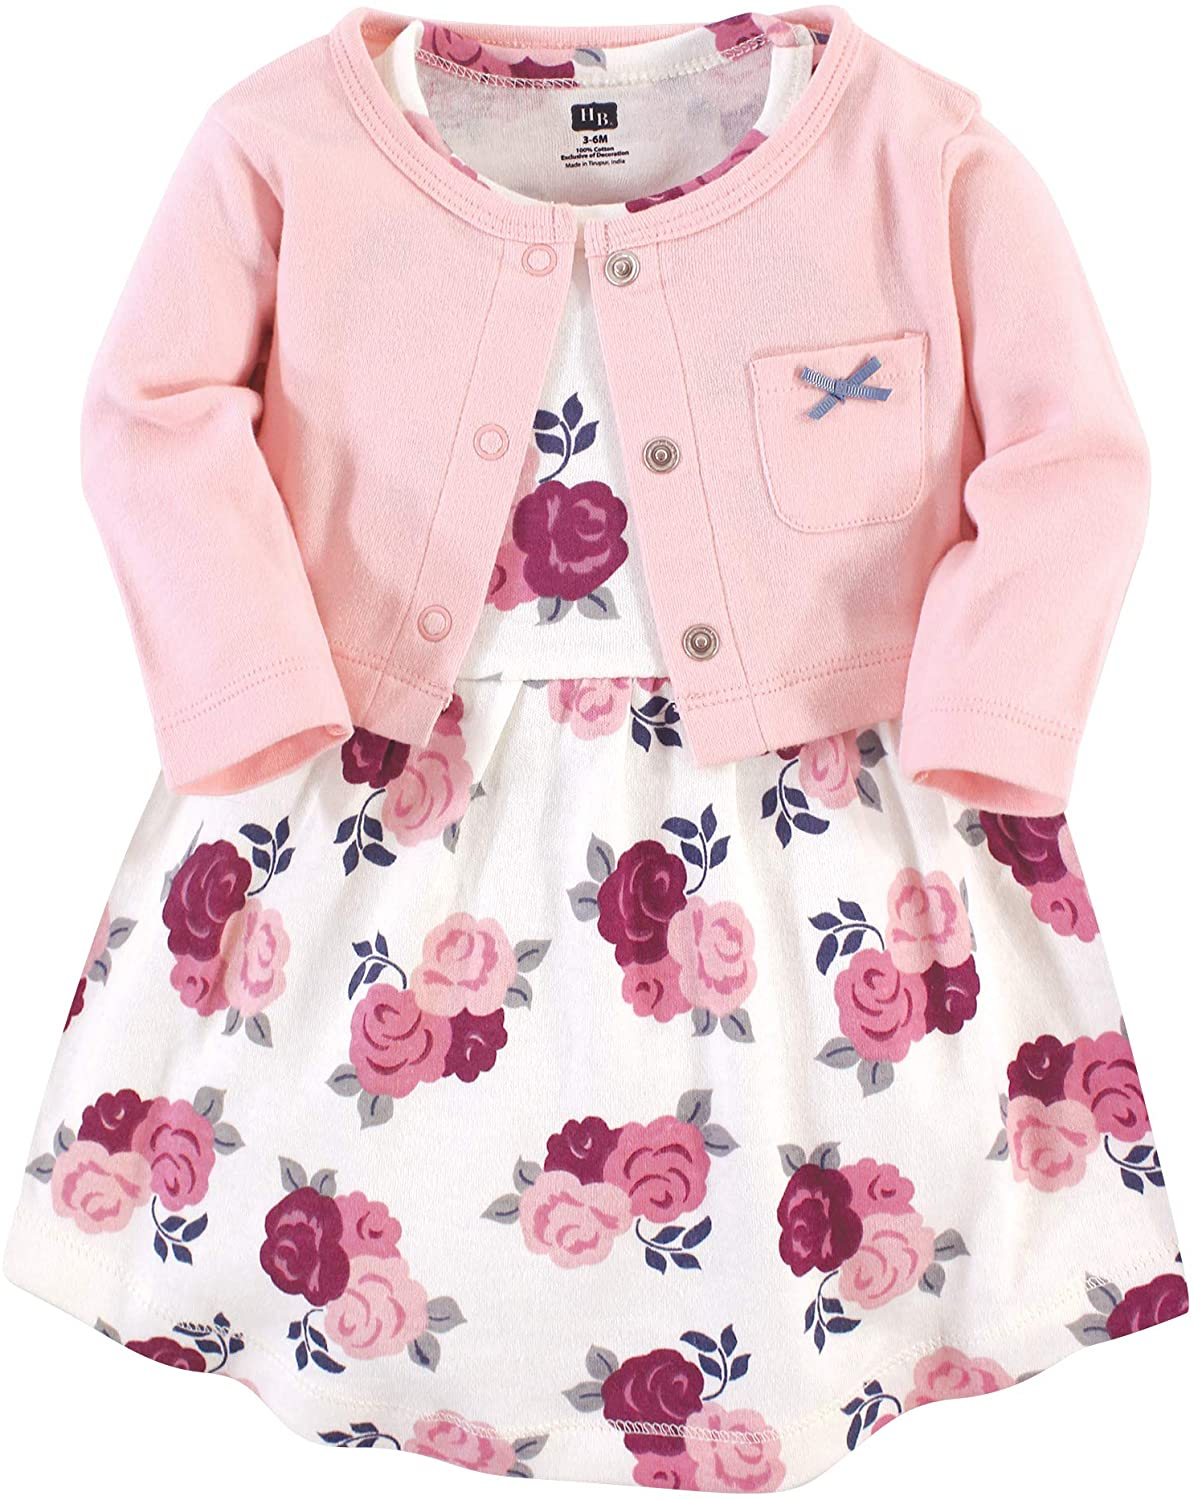 Hudson Baby Baby Girls Cotton Dress and Cardigan Set